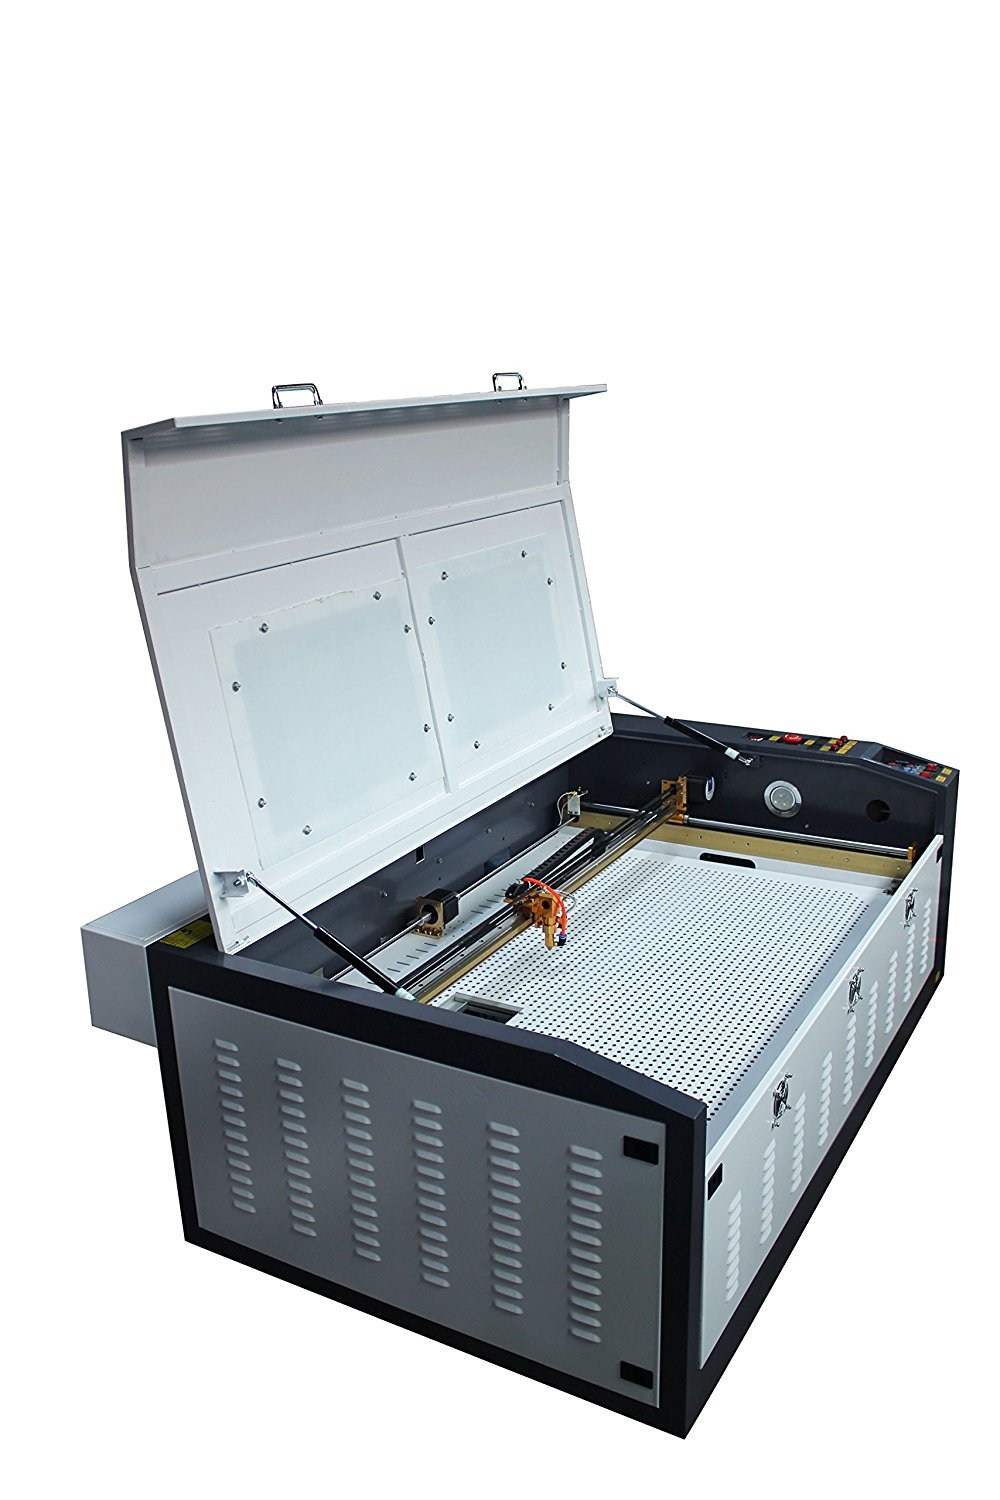 TEN-HIGH 1060 1000x600mm 39.37x23.62 inches 90W small desktop laser engraving cutting machine, Standard version.